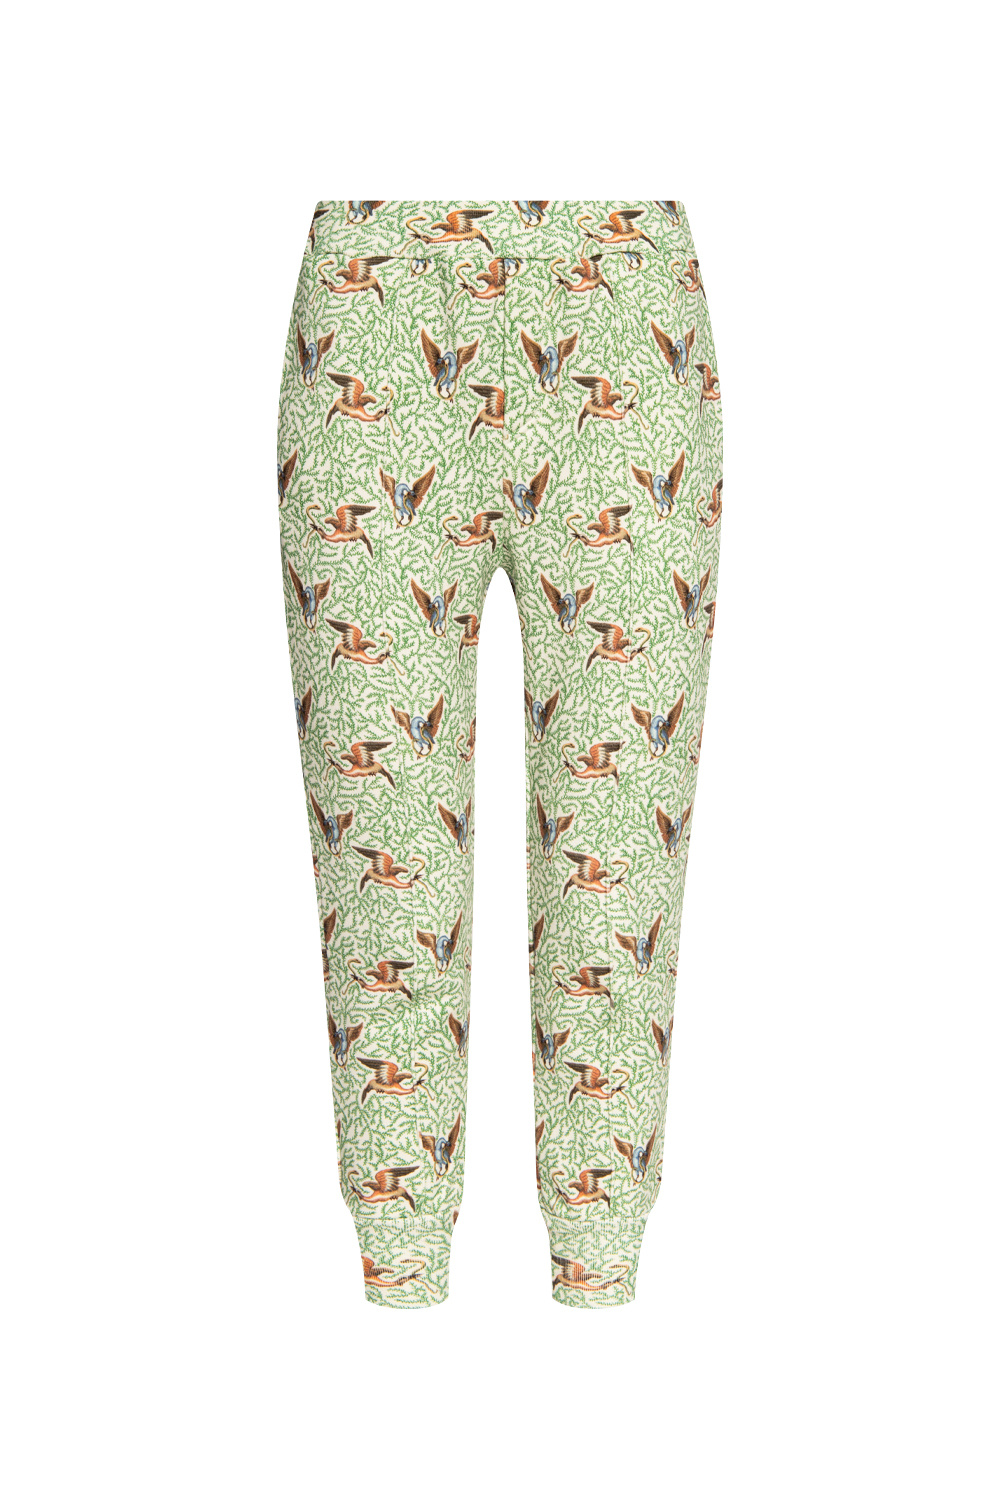 Undercover Patterned sweatpants